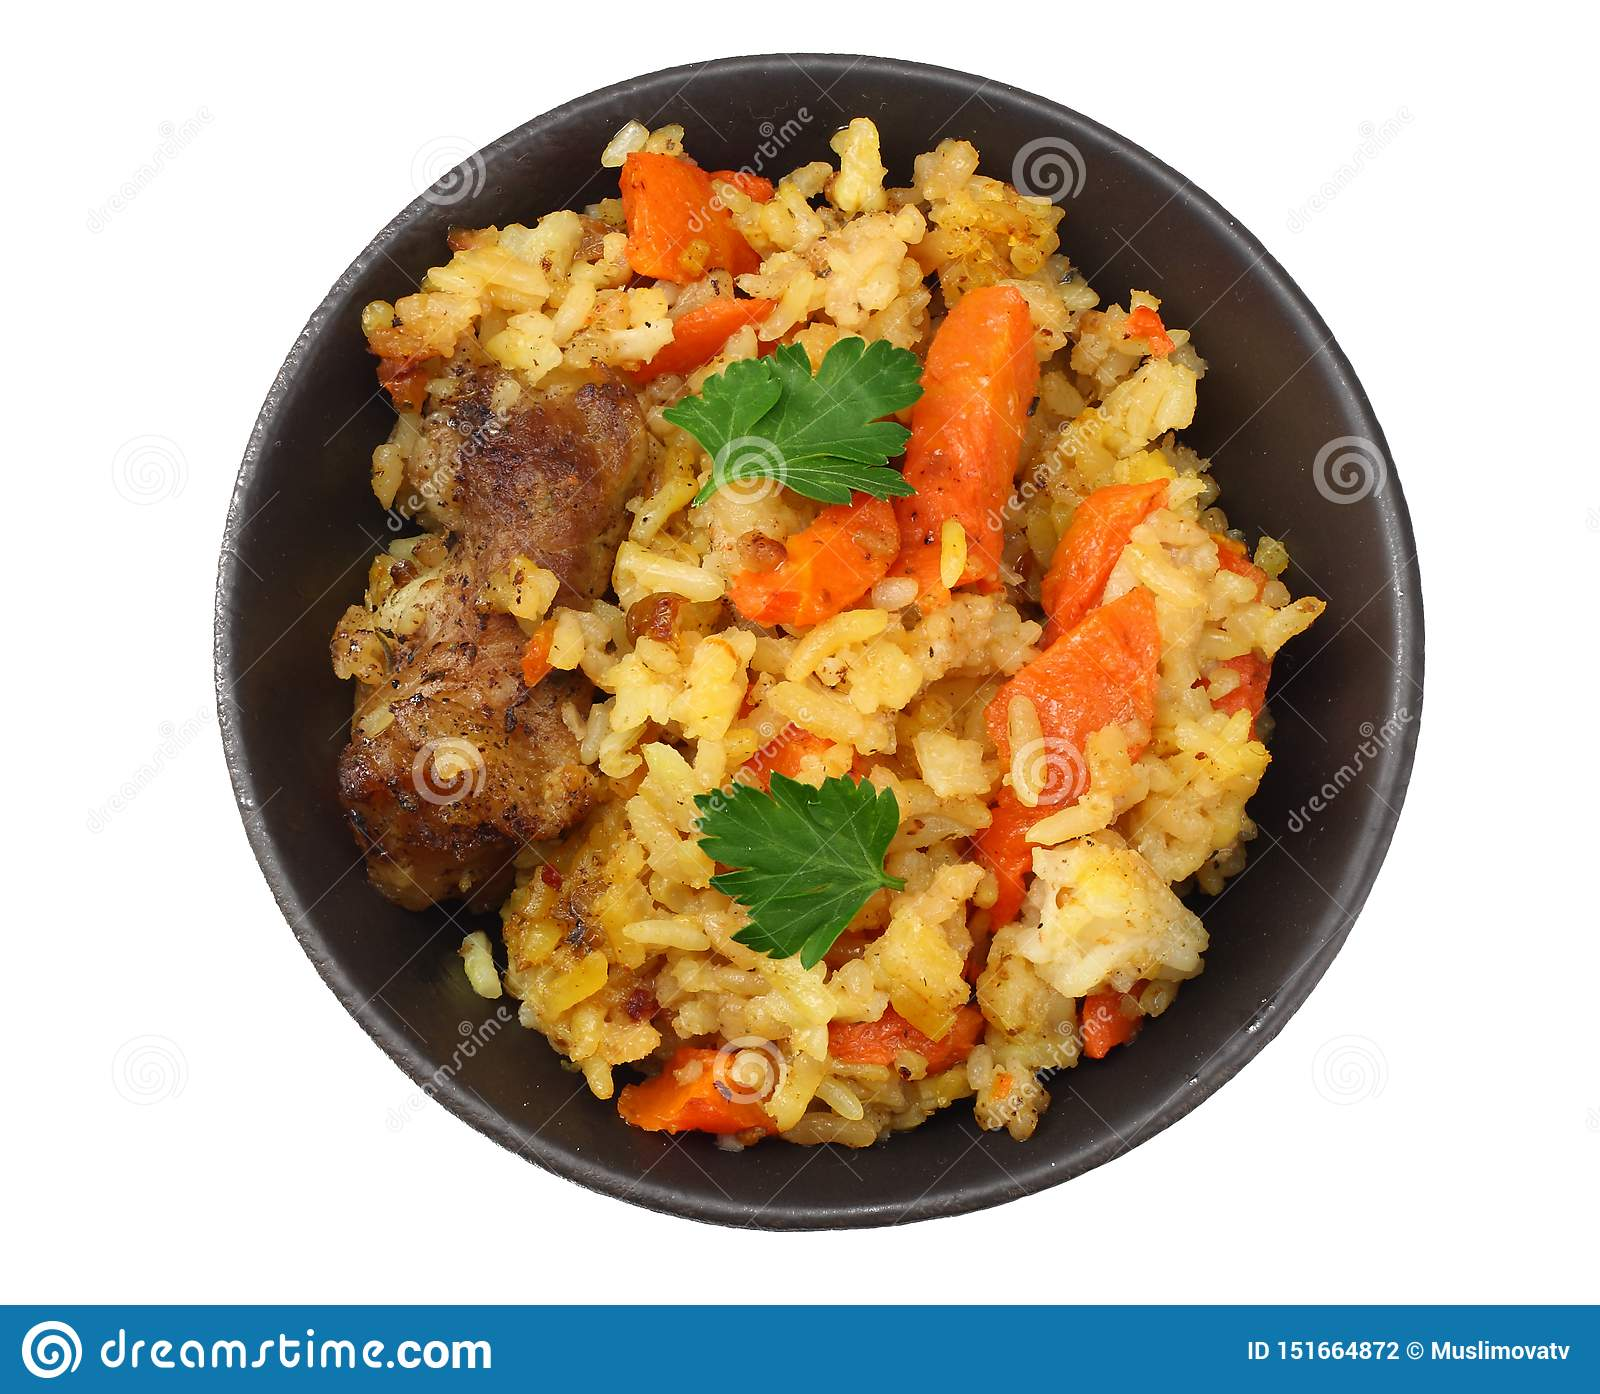 pilaf with meat on black plate isolated on white background. top view